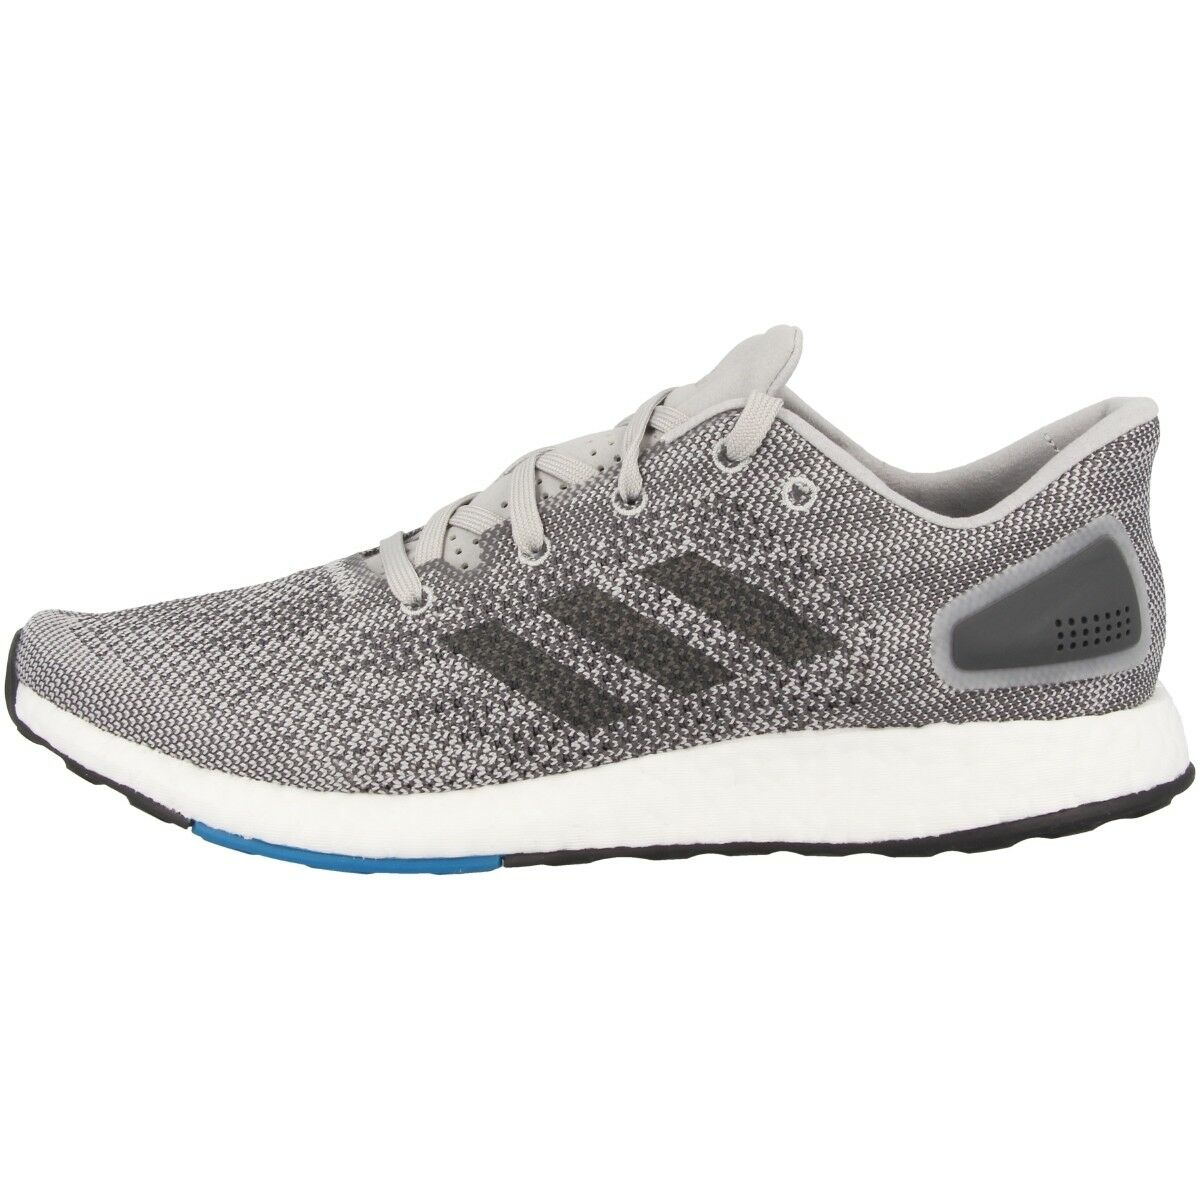 Adidas Pureboost Dpr Men's shoes Running Sneakers Grey S82010 Ultra Nmd